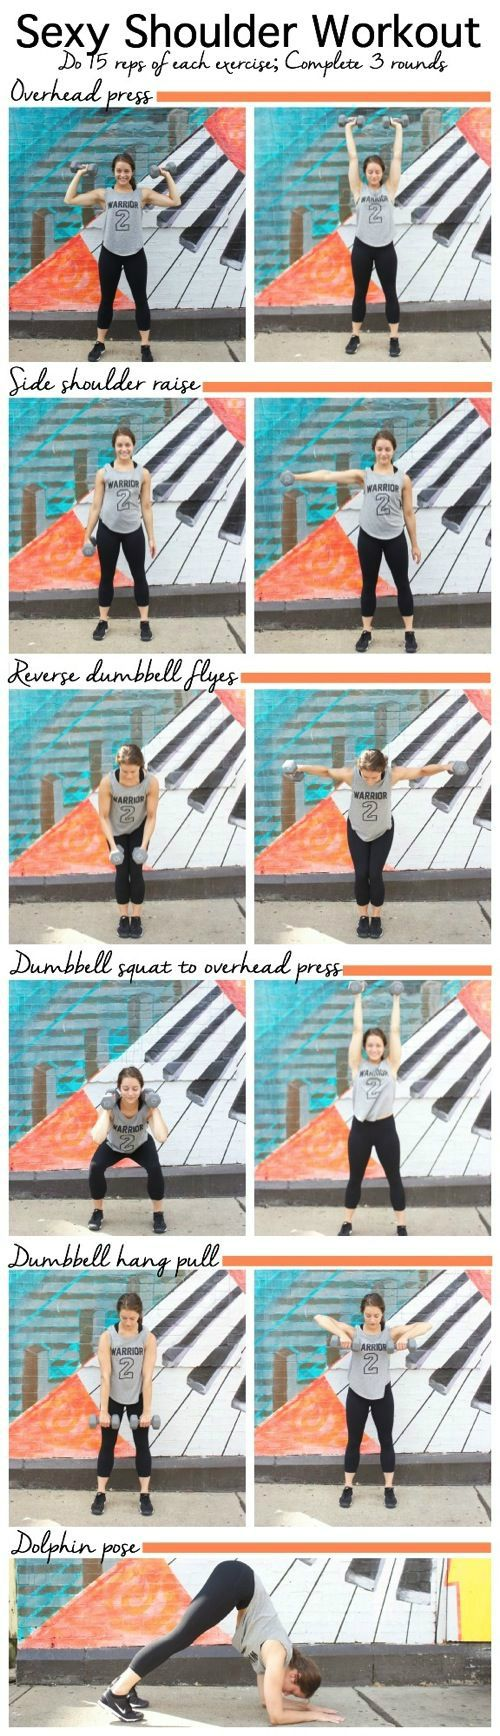 Hi everyone, today I have put together a great workout to build nice sculpted shoulders for losing weight. I never look forward to working my shoulders, but I sure love the results to lose weight when doing it. Our shoulders are such an amazing body part